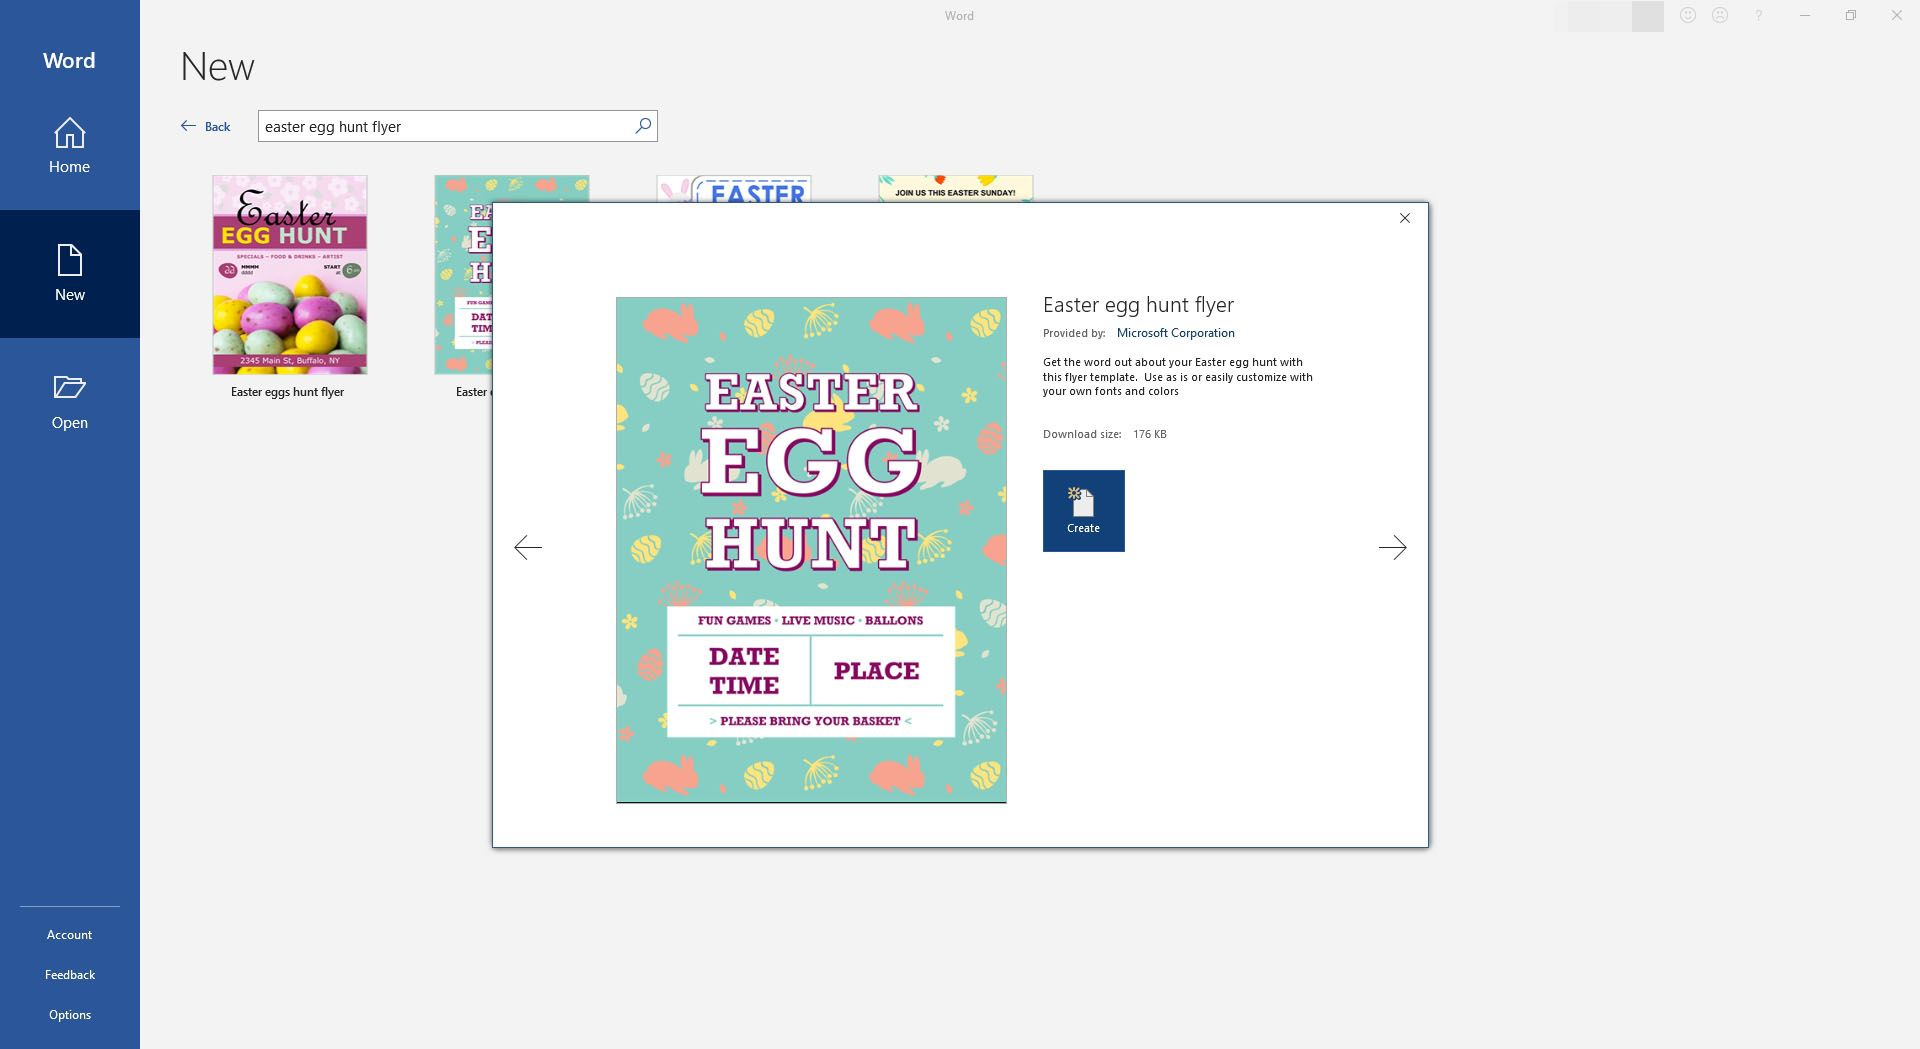 Easter Egg Hunt Flyer Announcement Template for Microsoft Word